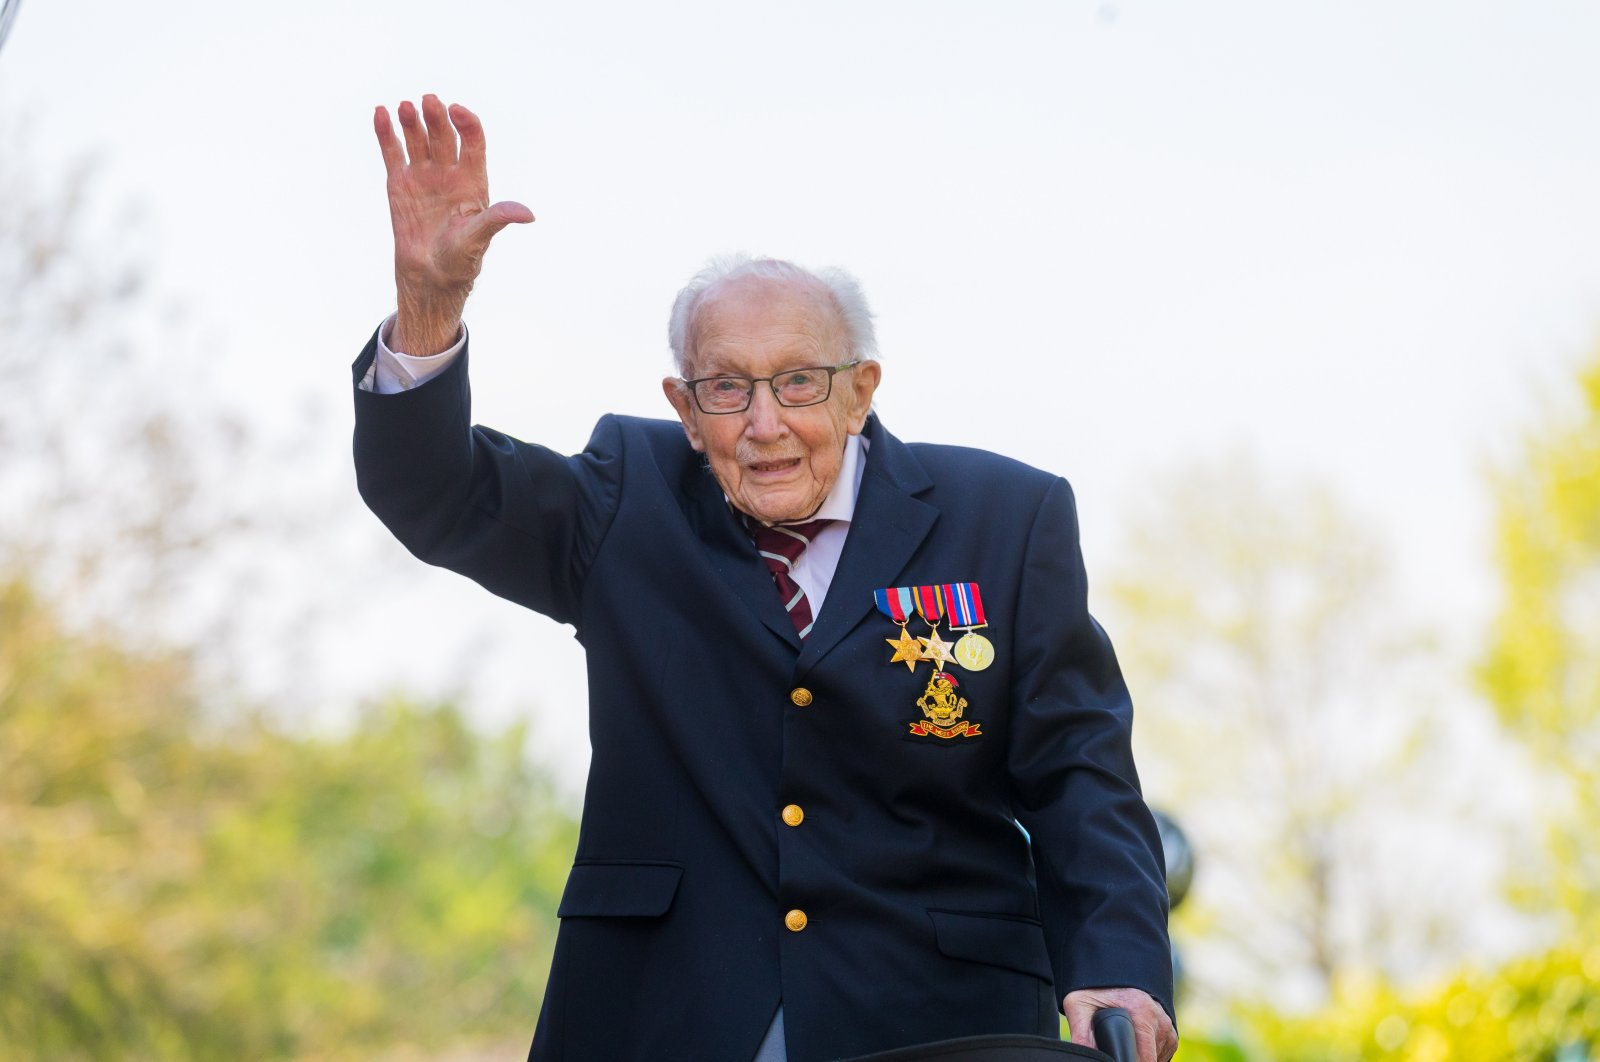 99-year-old British veteran Captain Tom Moore reacts after completing the 100th length of his back garden in Marston Moretaine, Bedfordshire, Britainton Moretaine, Bedfordshire, Britain, April 16, 2020. (EPA Photo)